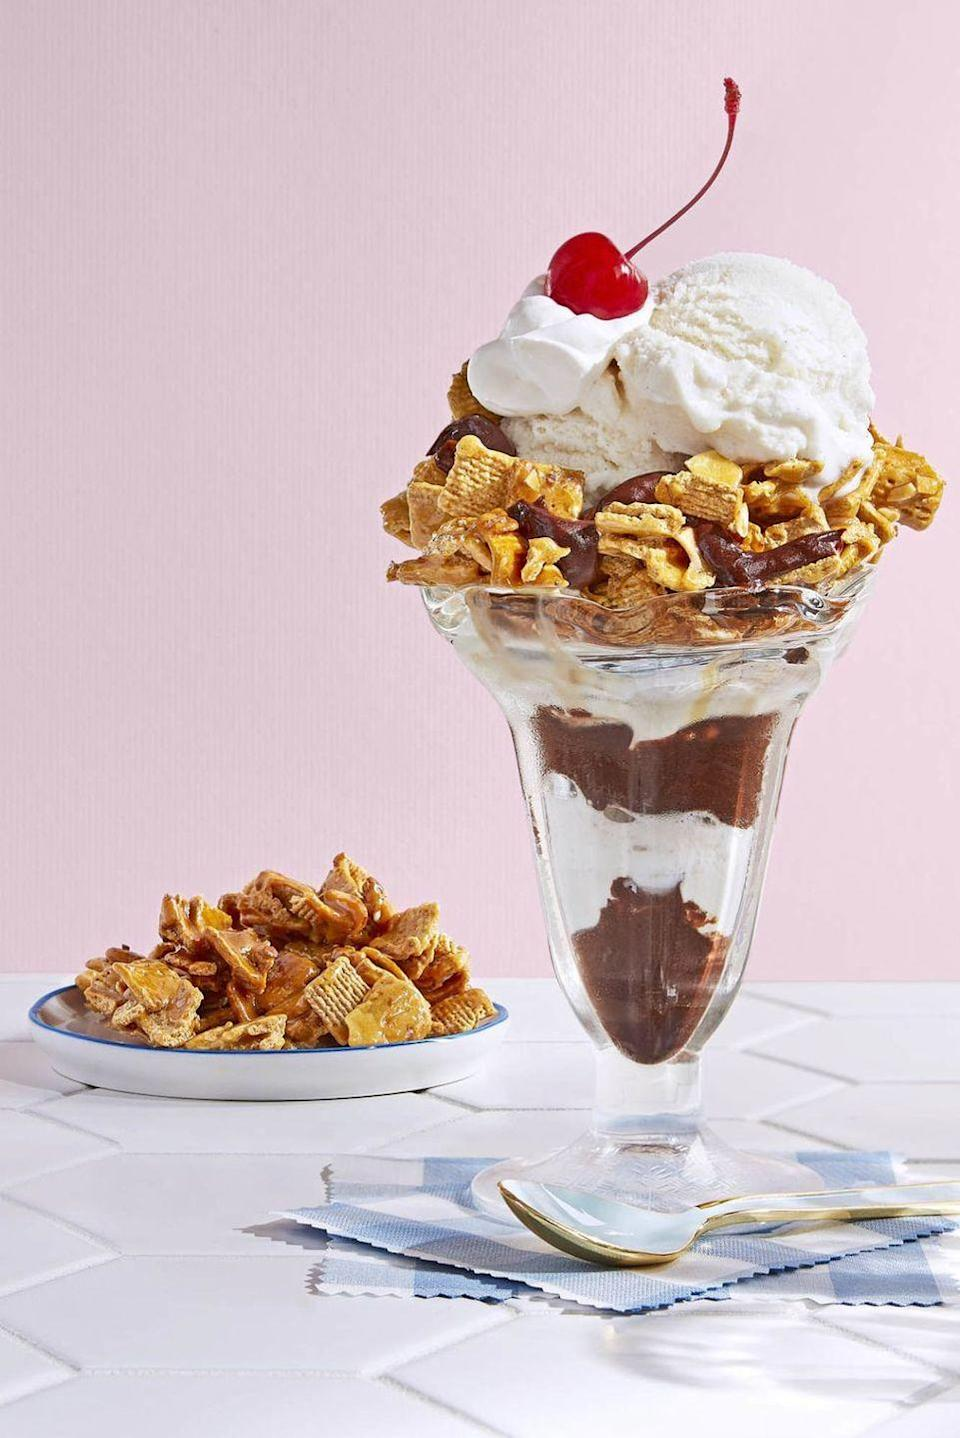 """<p>Cereal takes center stage in this gooey ice cream parfait. </p><p><strong><a href=""""https://www.countryliving.com/food-drinks/recipes/a46349/hot-fudge-golden-grahams-parfait-recipe/"""" rel=""""nofollow noopener"""" target=""""_blank"""" data-ylk=""""slk:Get the recipe"""" class=""""link rapid-noclick-resp"""">Get the recipe</a>.</strong></p>"""